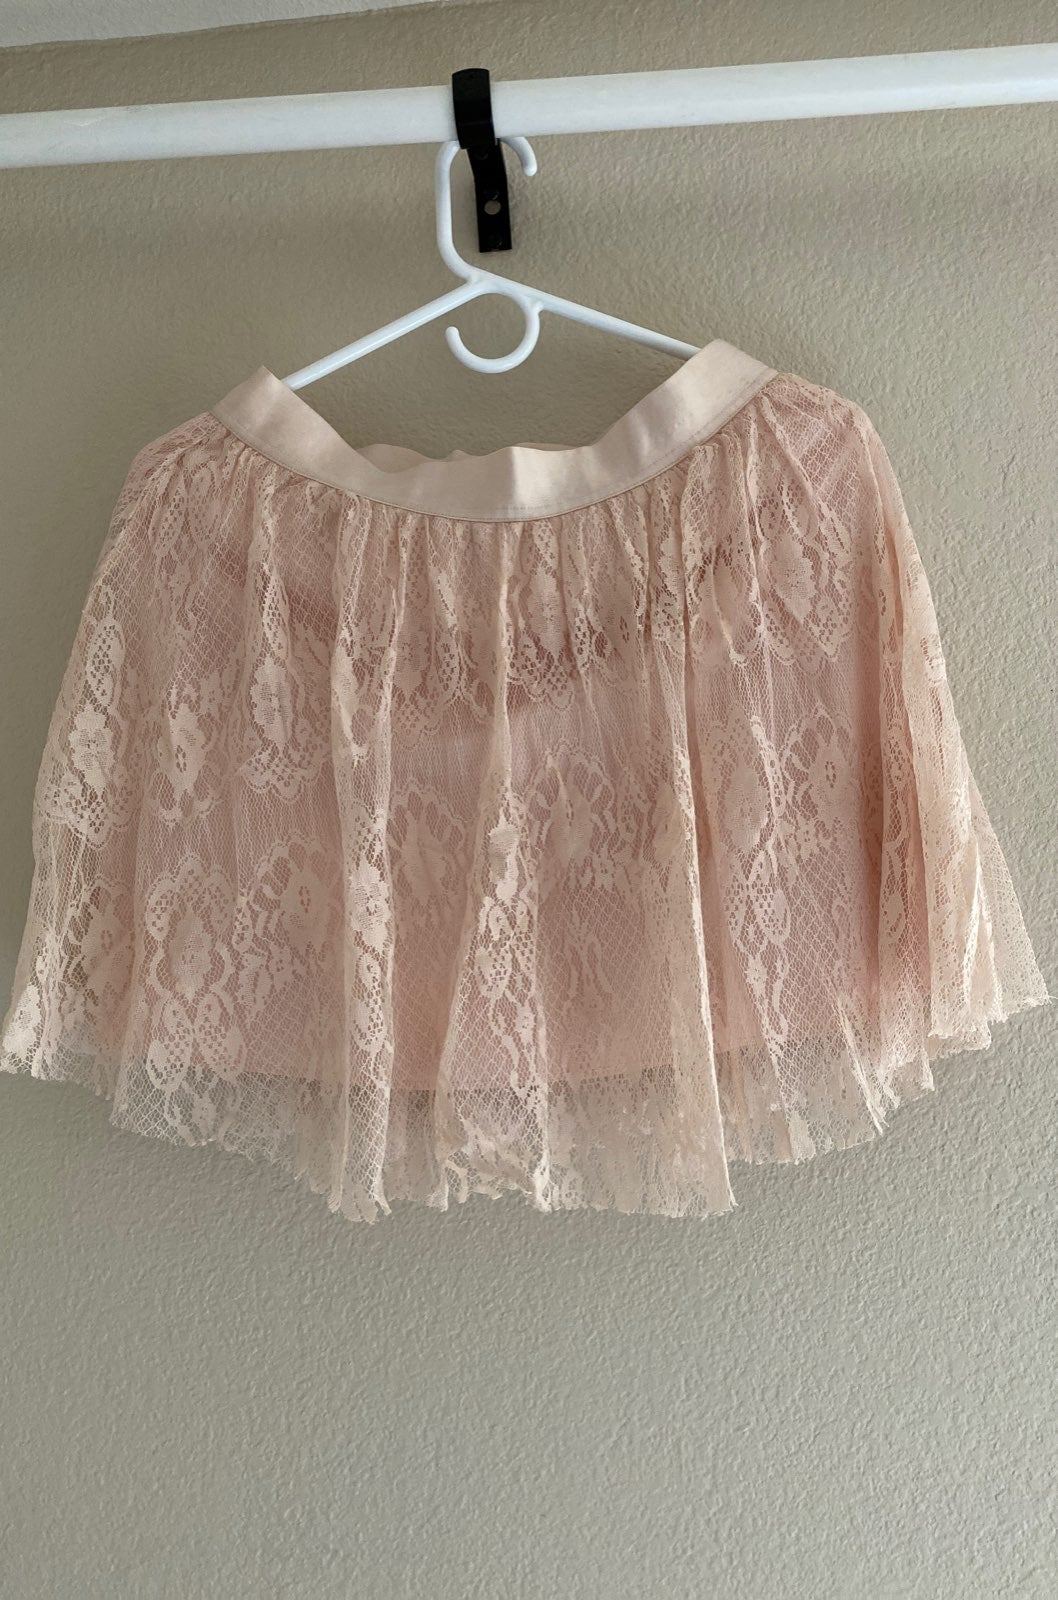 Frenchi peach lace skirt - L